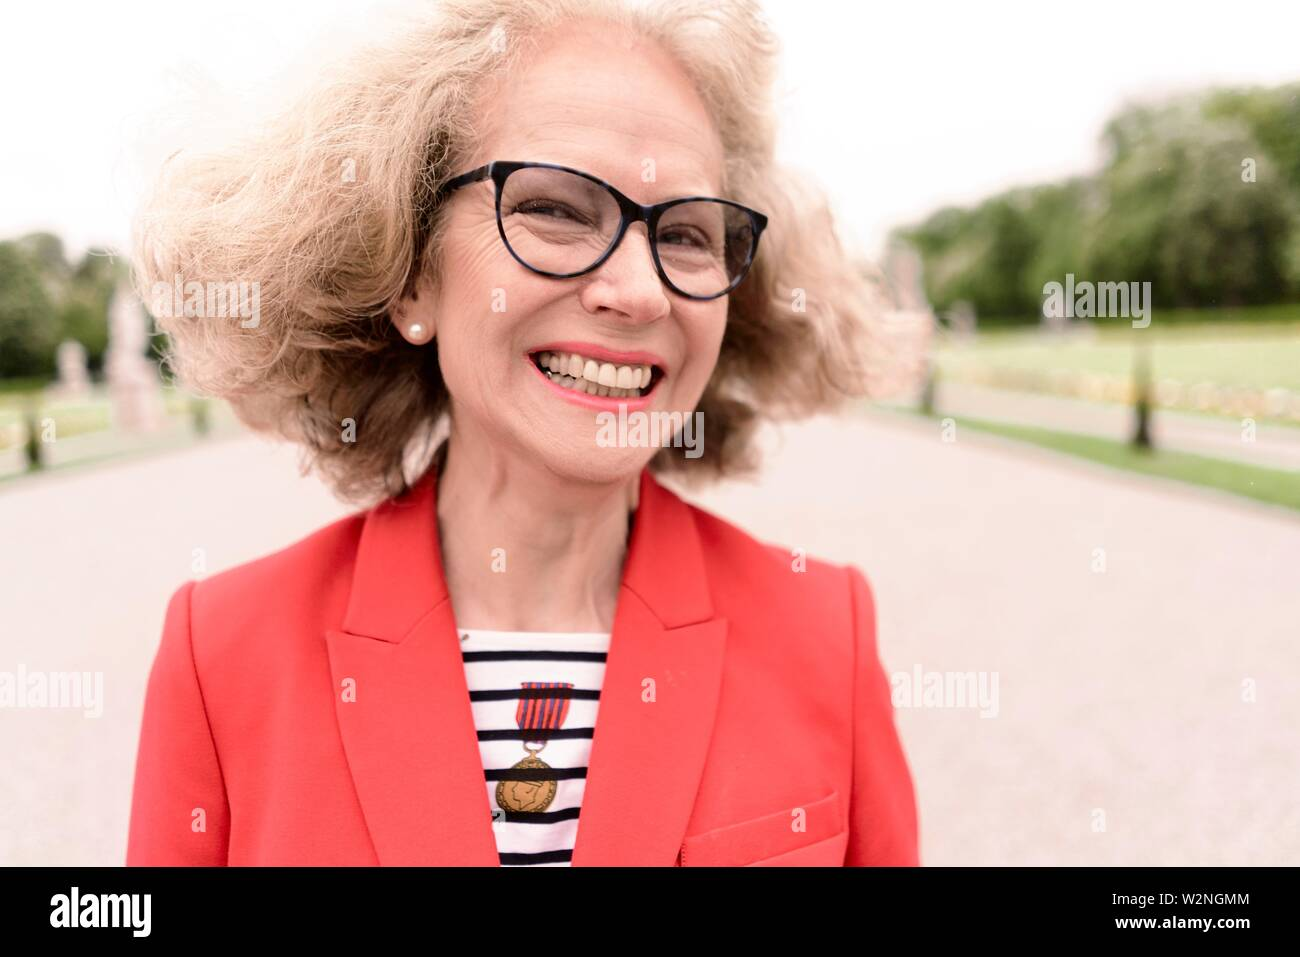 lively senior woman (67 years old) in park, in Nymphenburg, Munich, Germany. - Stock Image